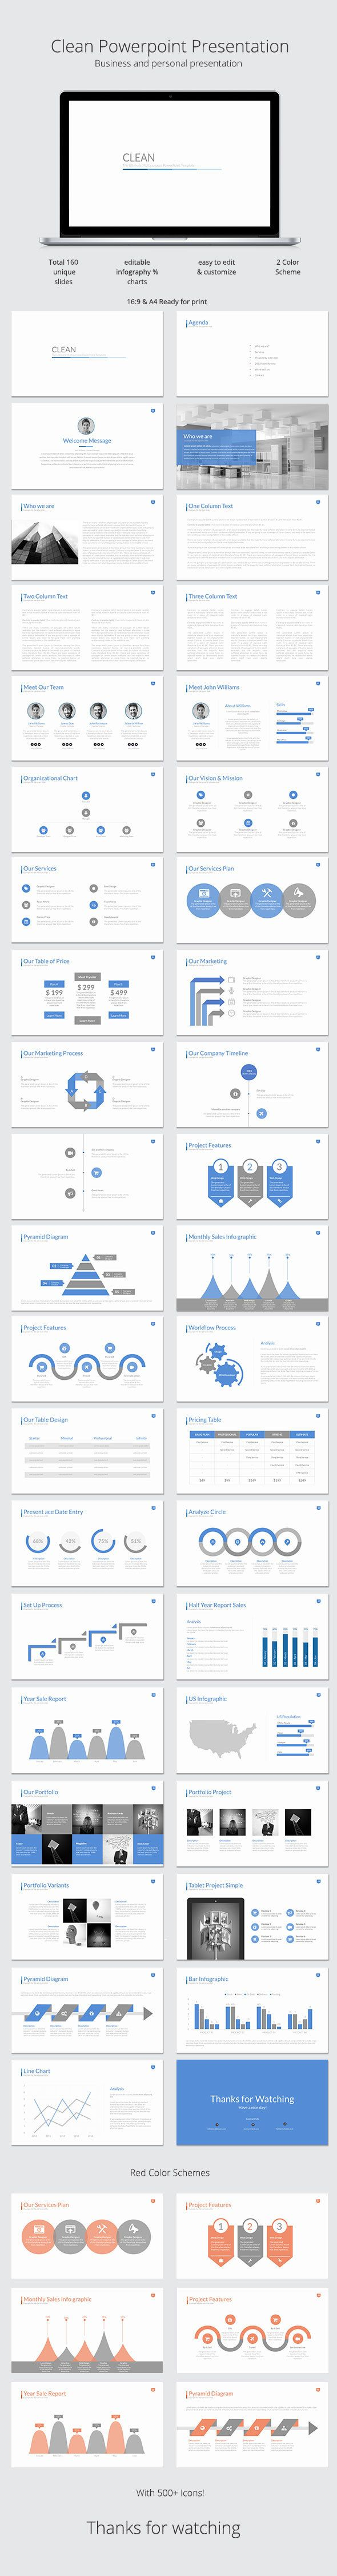 Coolmathgamesus  Personable  Ideas About Powerpoint Presentations On Pinterest With Exquisite Clean Powerpoint Template With Cute Powerpoint  Ppt Also Powerpoint  Themes Free In Addition Powerpoint For Vista And Microsoft Powerpoint  Viewer As Well As Andy Warhol Powerpoint For Kids Additionally Microsoft Powerpoint Download Free  From Pinterestcom With Coolmathgamesus  Exquisite  Ideas About Powerpoint Presentations On Pinterest With Cute Clean Powerpoint Template And Personable Powerpoint  Ppt Also Powerpoint  Themes Free In Addition Powerpoint For Vista From Pinterestcom